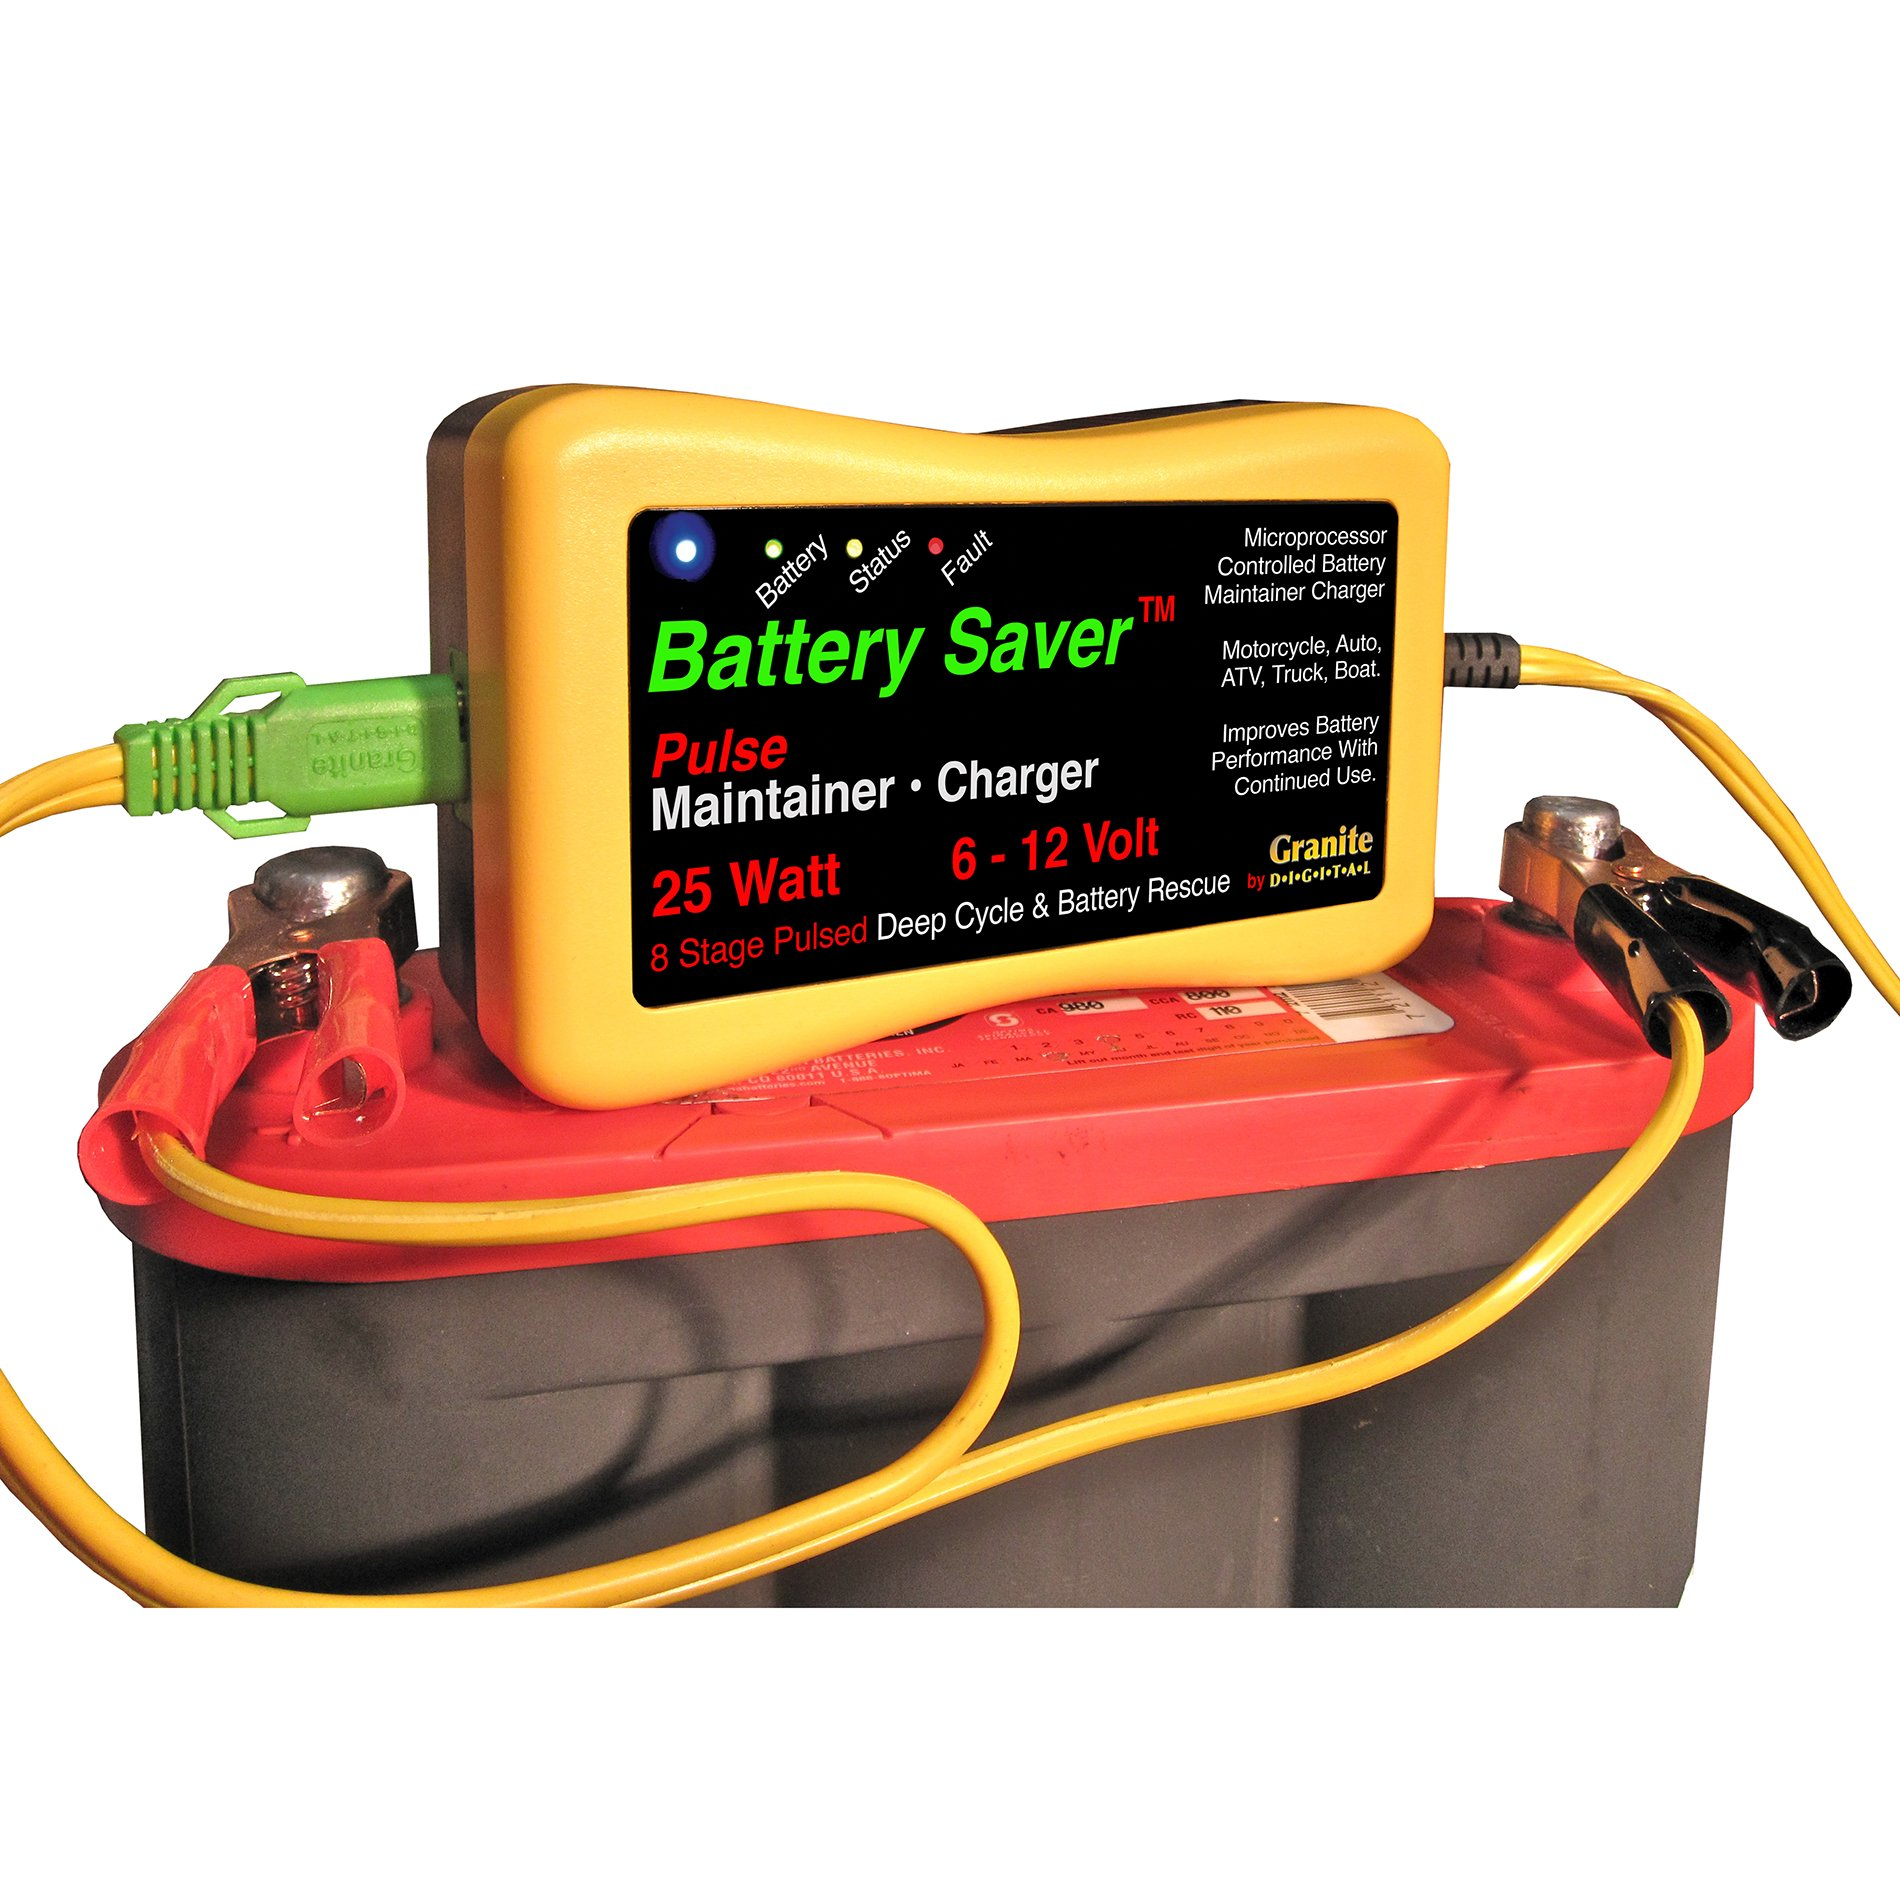 Save A Battery 3015 12 Volt/25 Watt Battery Saver/Maintainer and Battery Rescue by Battery Saver (Image #2)